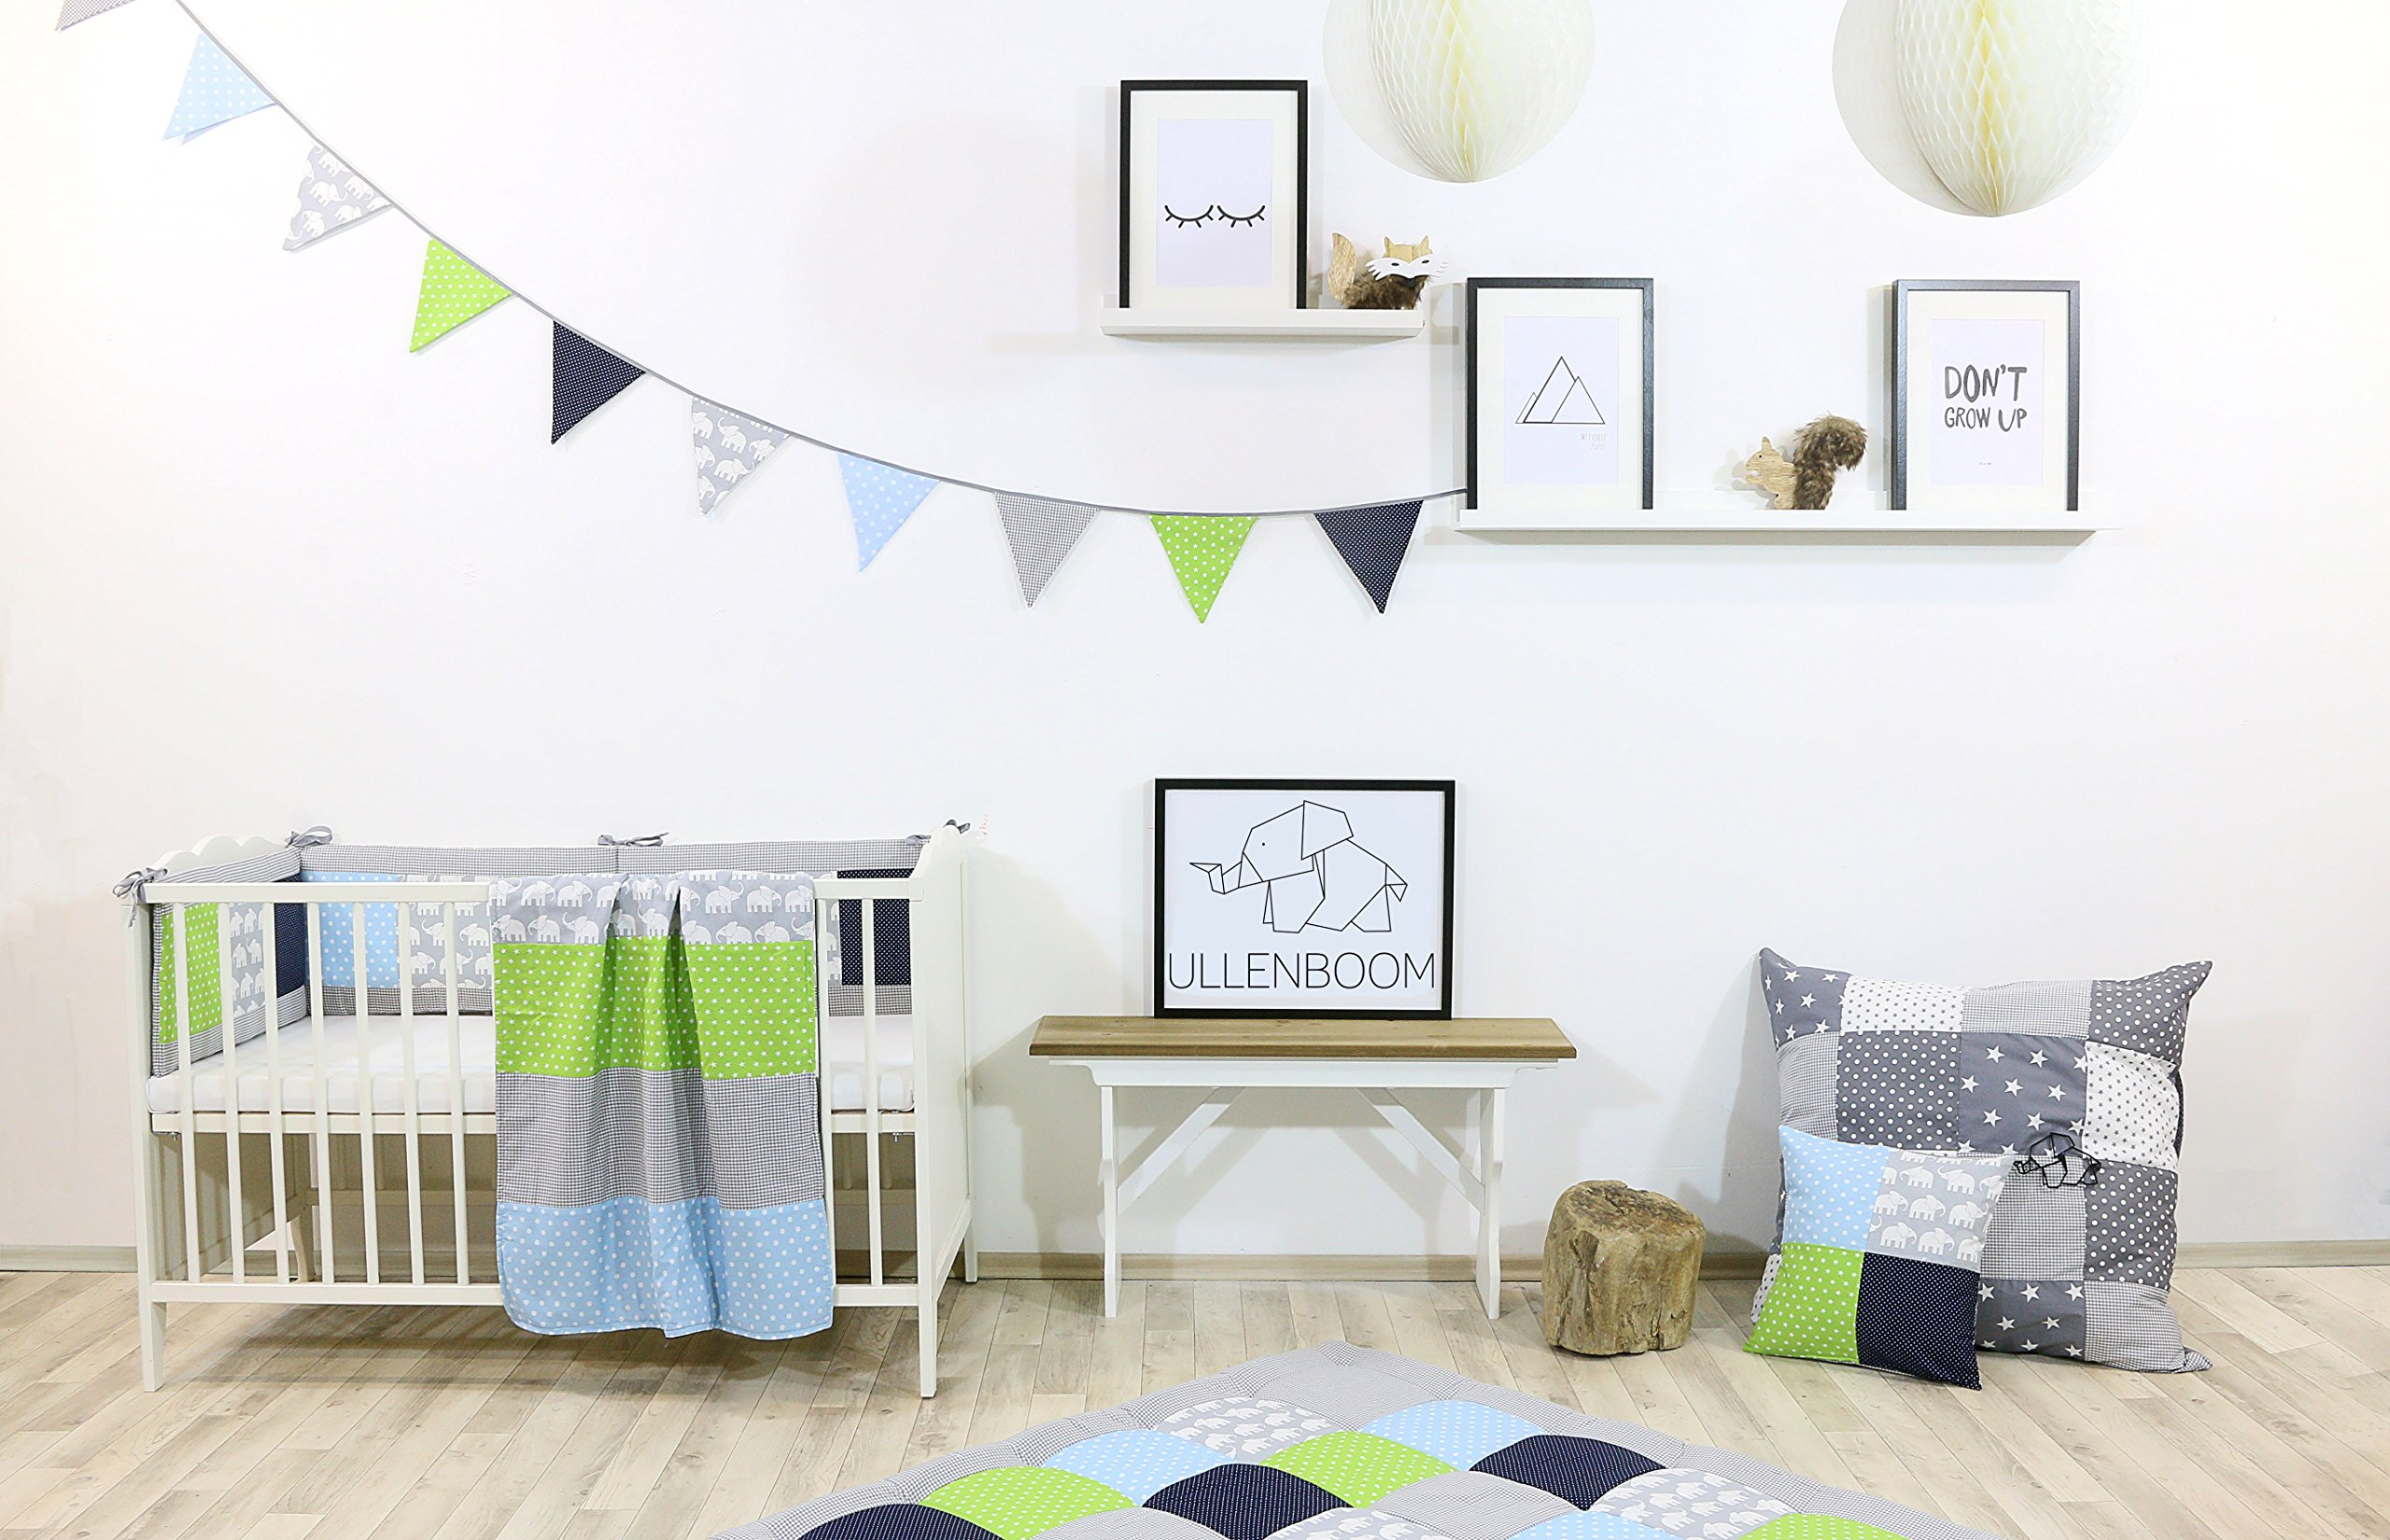 ULLENBOOM® Bumper- Blue Green Elephants (200x 30cm Baby playpen Bumper, 100x 100cm playpen Bumper Pads for The Head Area) ULLENBOOM This 200x 30cm patchwork bumper serves as a protective insert and surround for 100x 100cm playpens, to provide babies with protection- especially head protection- from playpen bars The sizes 200x 30cm and 400x 30cm (full surround) are for playpens- the 'full surround' bumper comes in two sections. ULLENBOOM also offers additional sizes for 140x 70cm and 120x 60cm cots These bumpers can be washed at 30 °C and the materials used are certified according to the Oeko-Tex standard (tested for harmful substances, hypoallergenic); smooth outer fabric: 100% cotton (Oeko-Tex); soft, thick wadding: 100% polyester (Oeko-Tex) 2